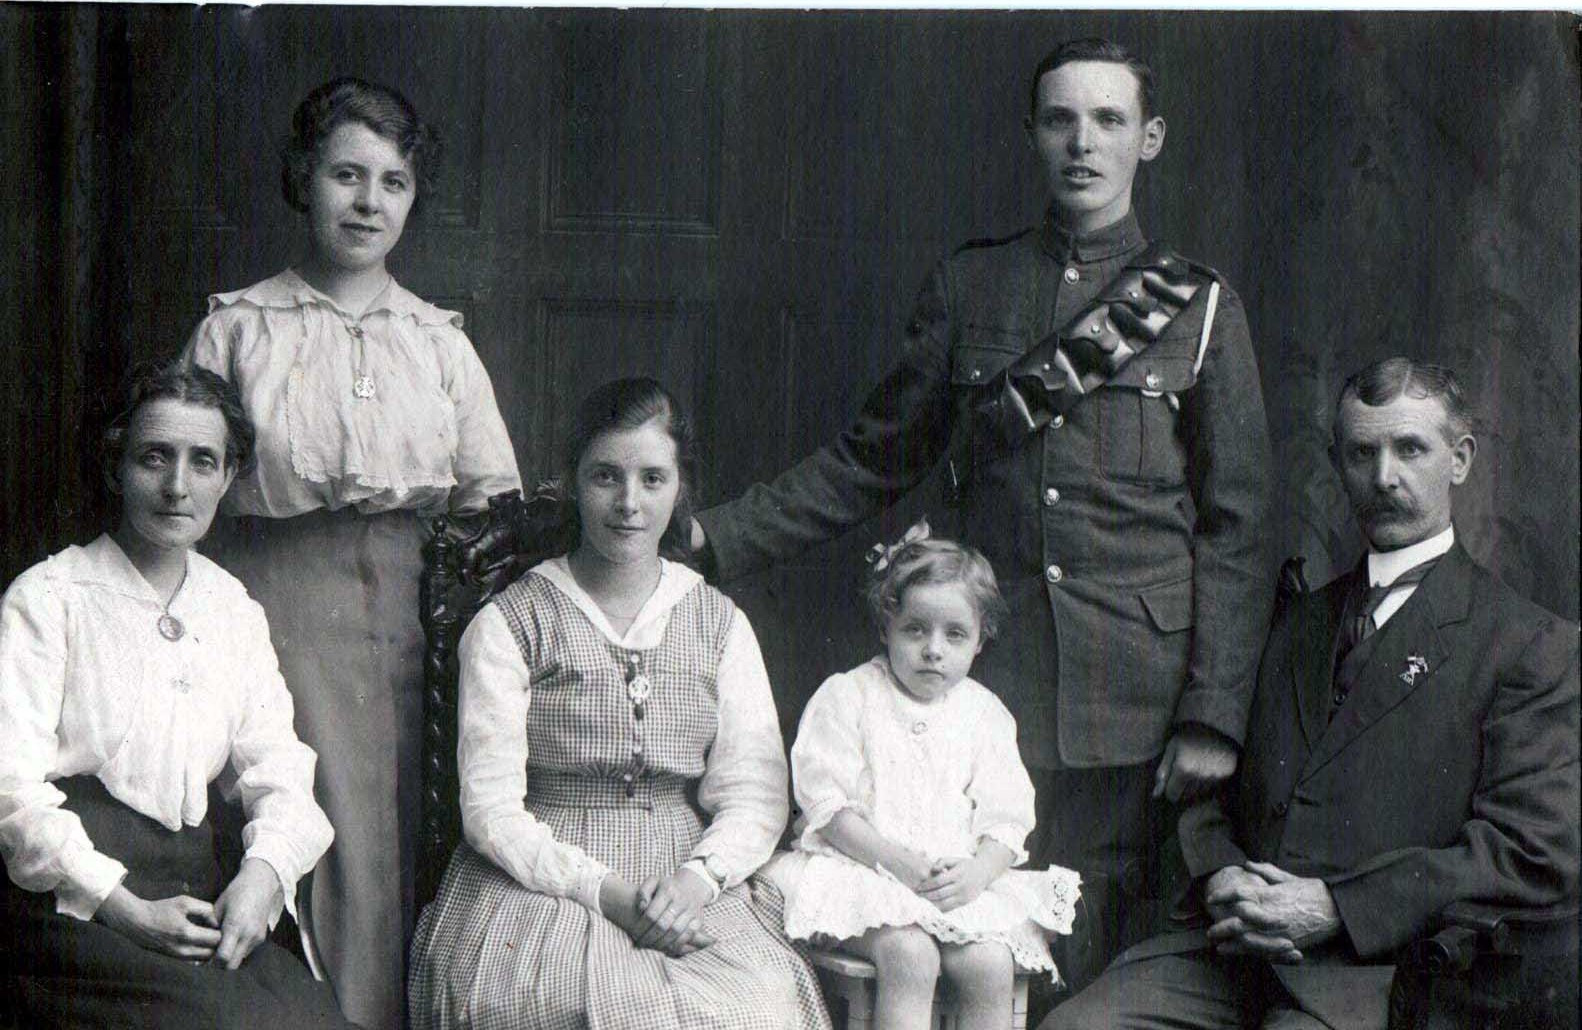 Gunner, father wears 11th Hussars badge.